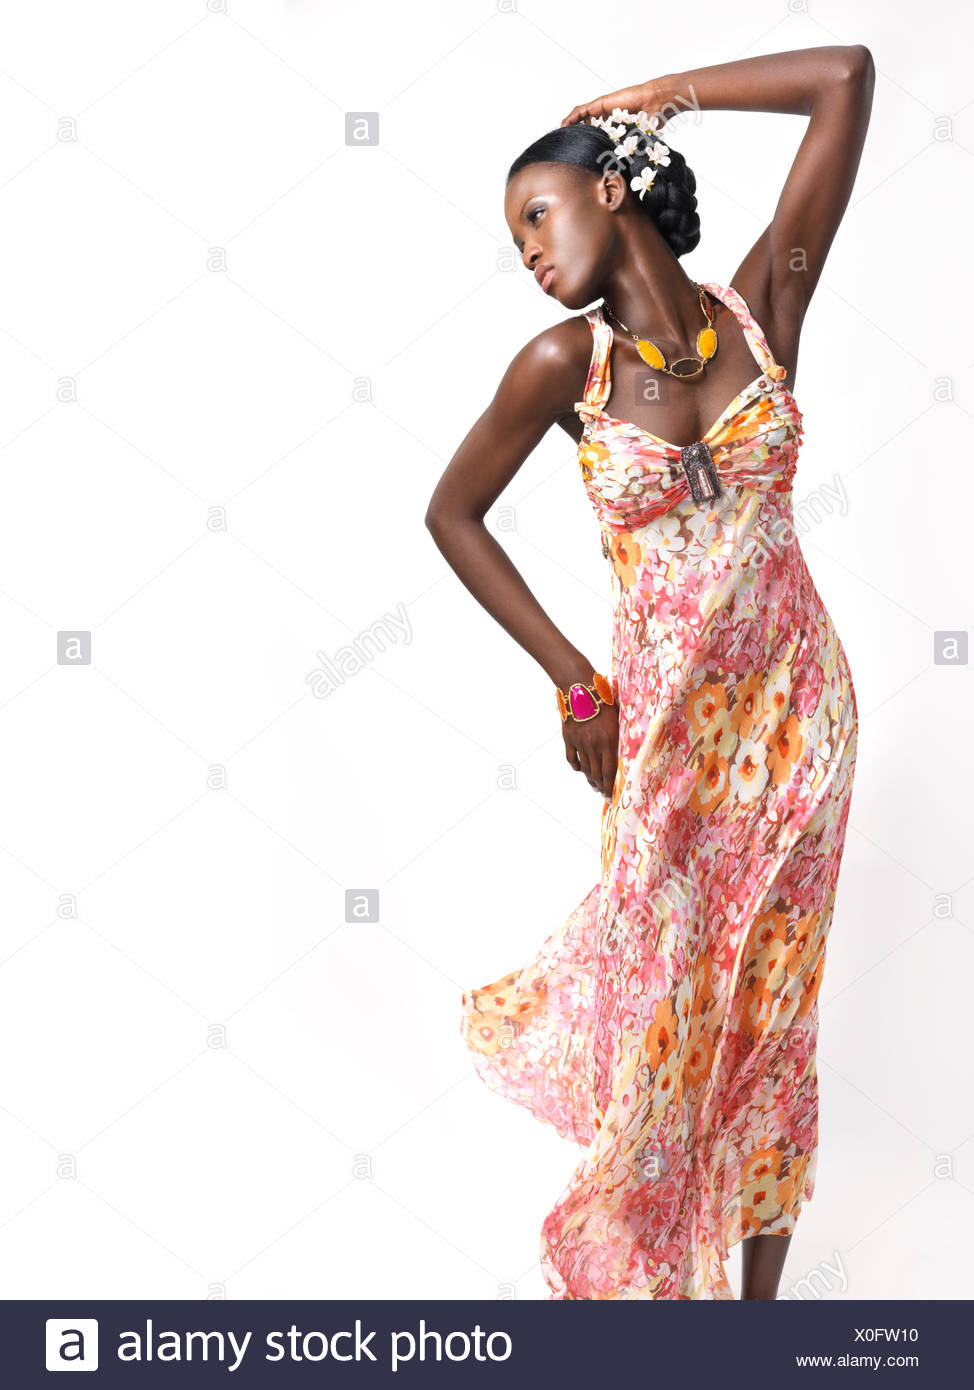 0a2e75f78f81 Beautiful young african american woman wearing a flying pink floral summer dress  isolated on white background